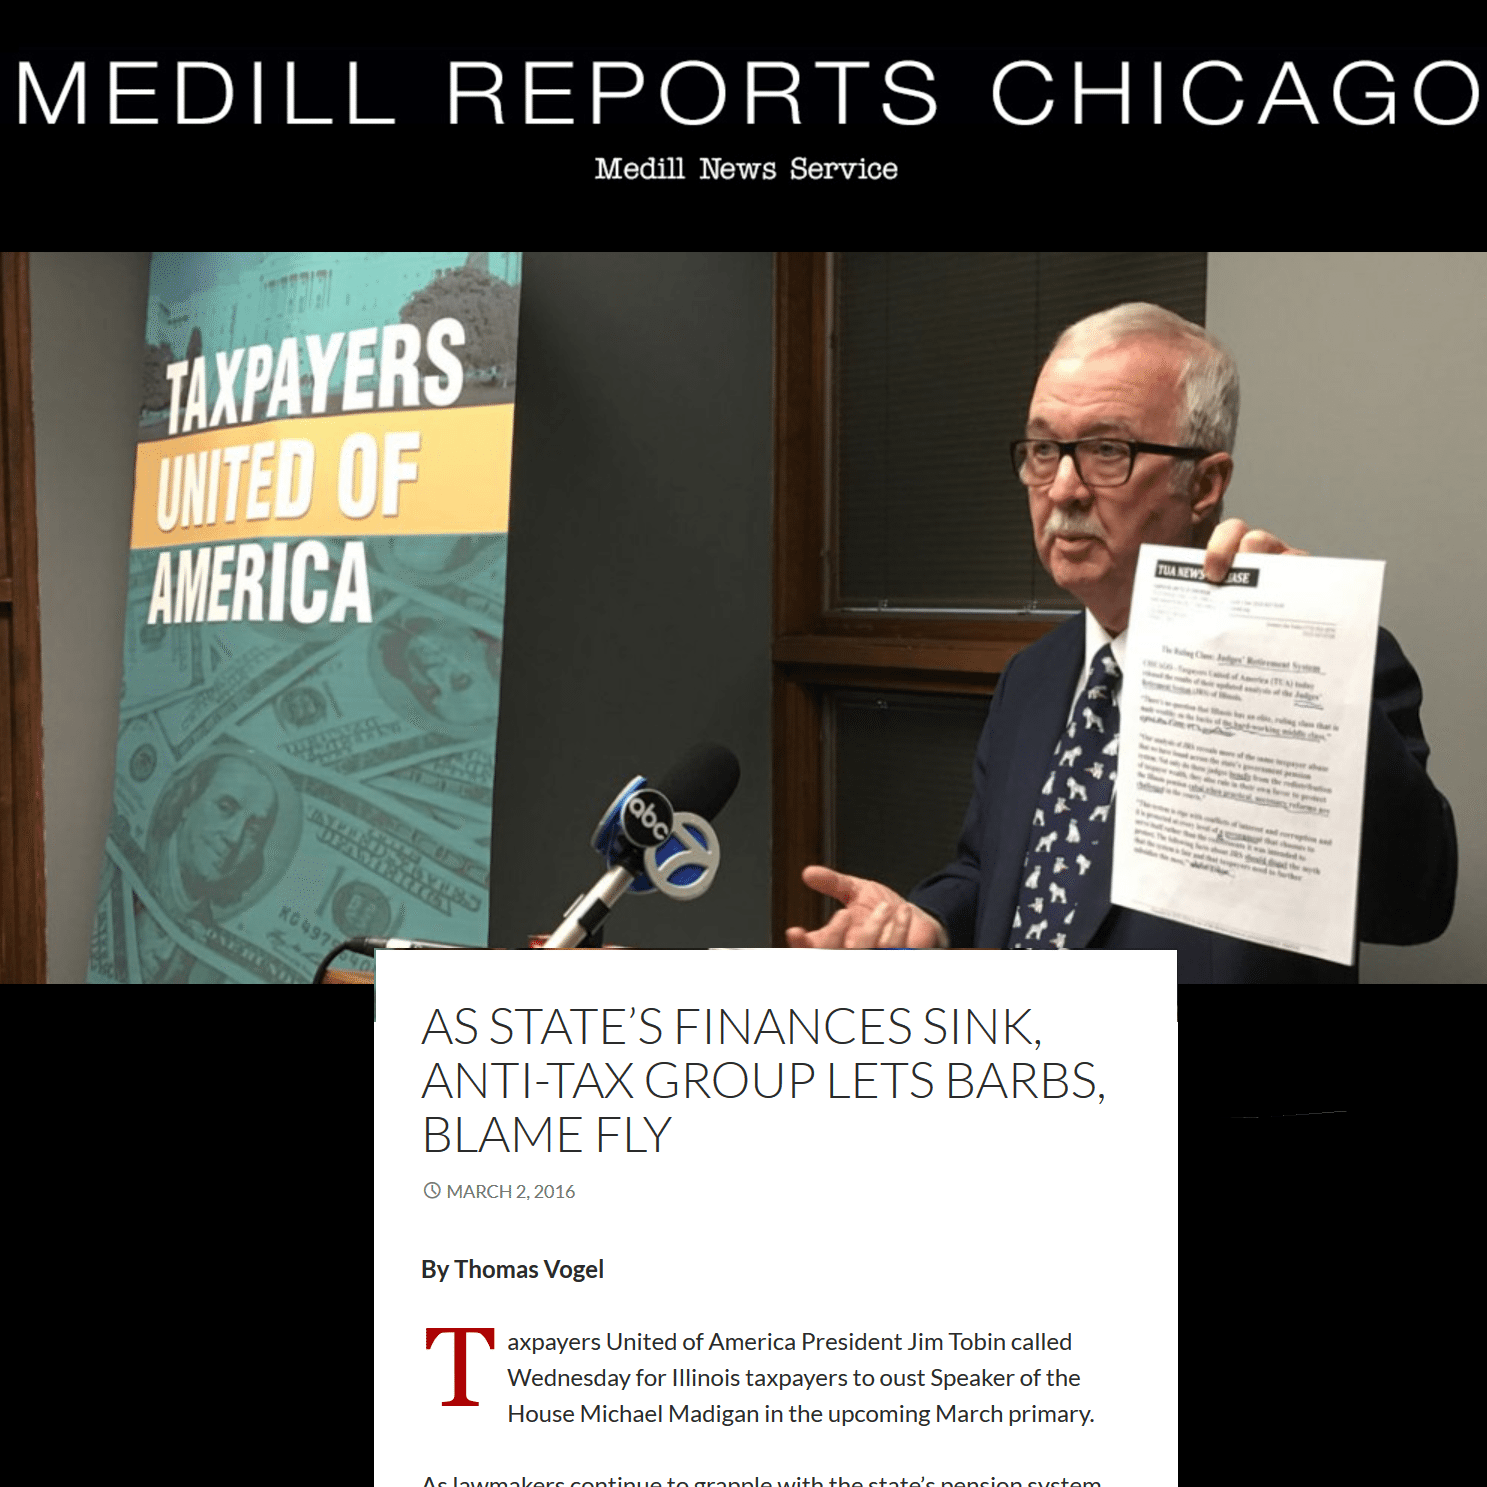 Medill Reports Chicago|As state's finances sink, anti-tax group lets barbs, blame fly